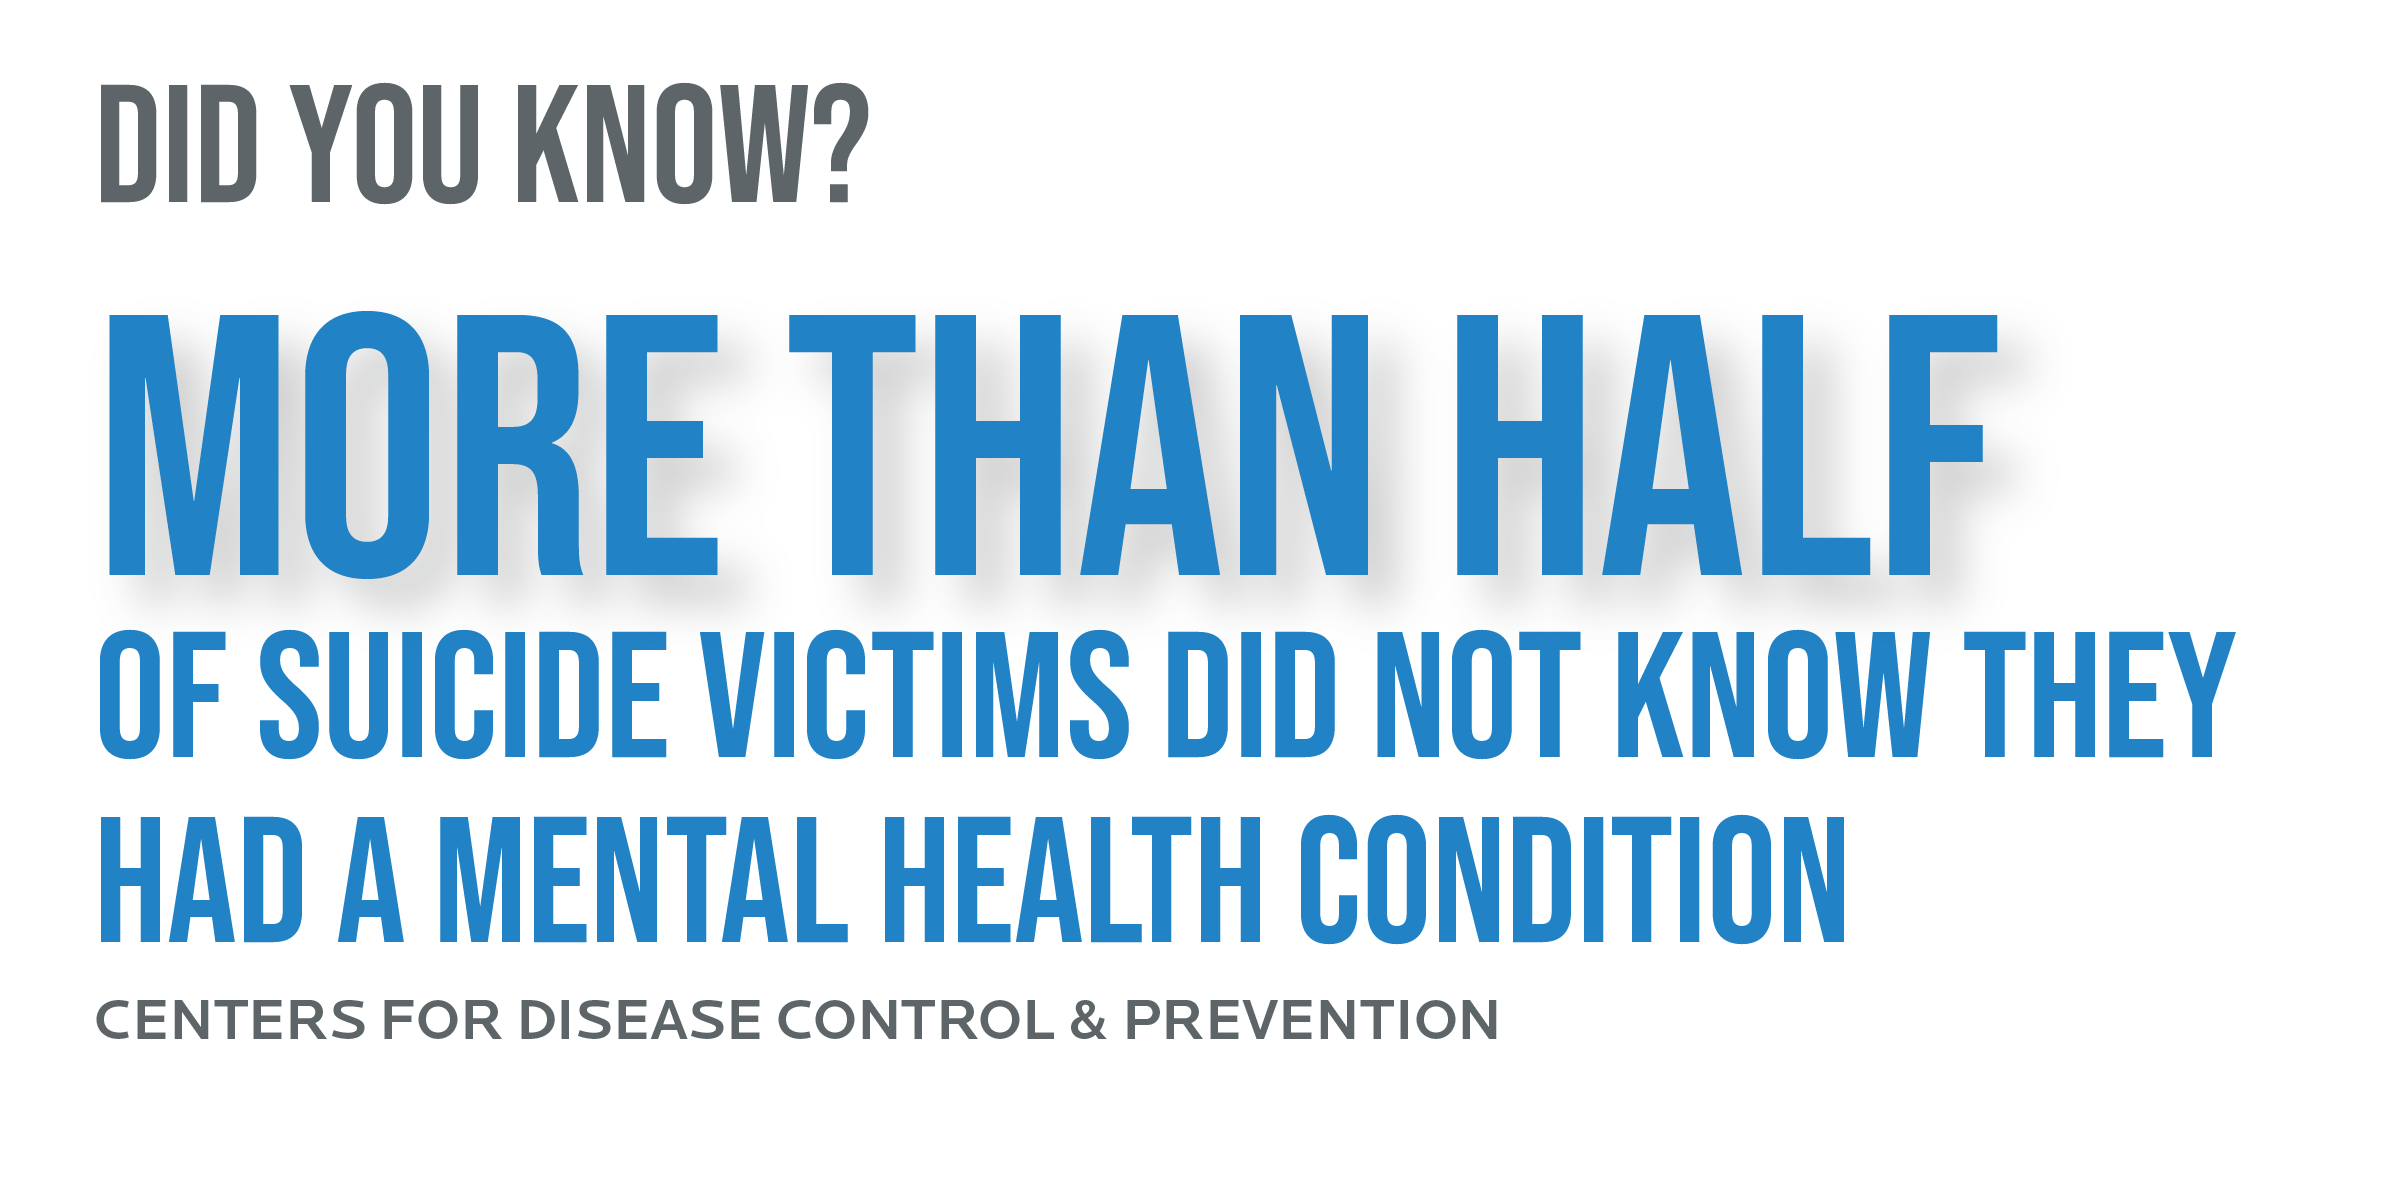 More than half of suicide victims did not know they had a mental health condition